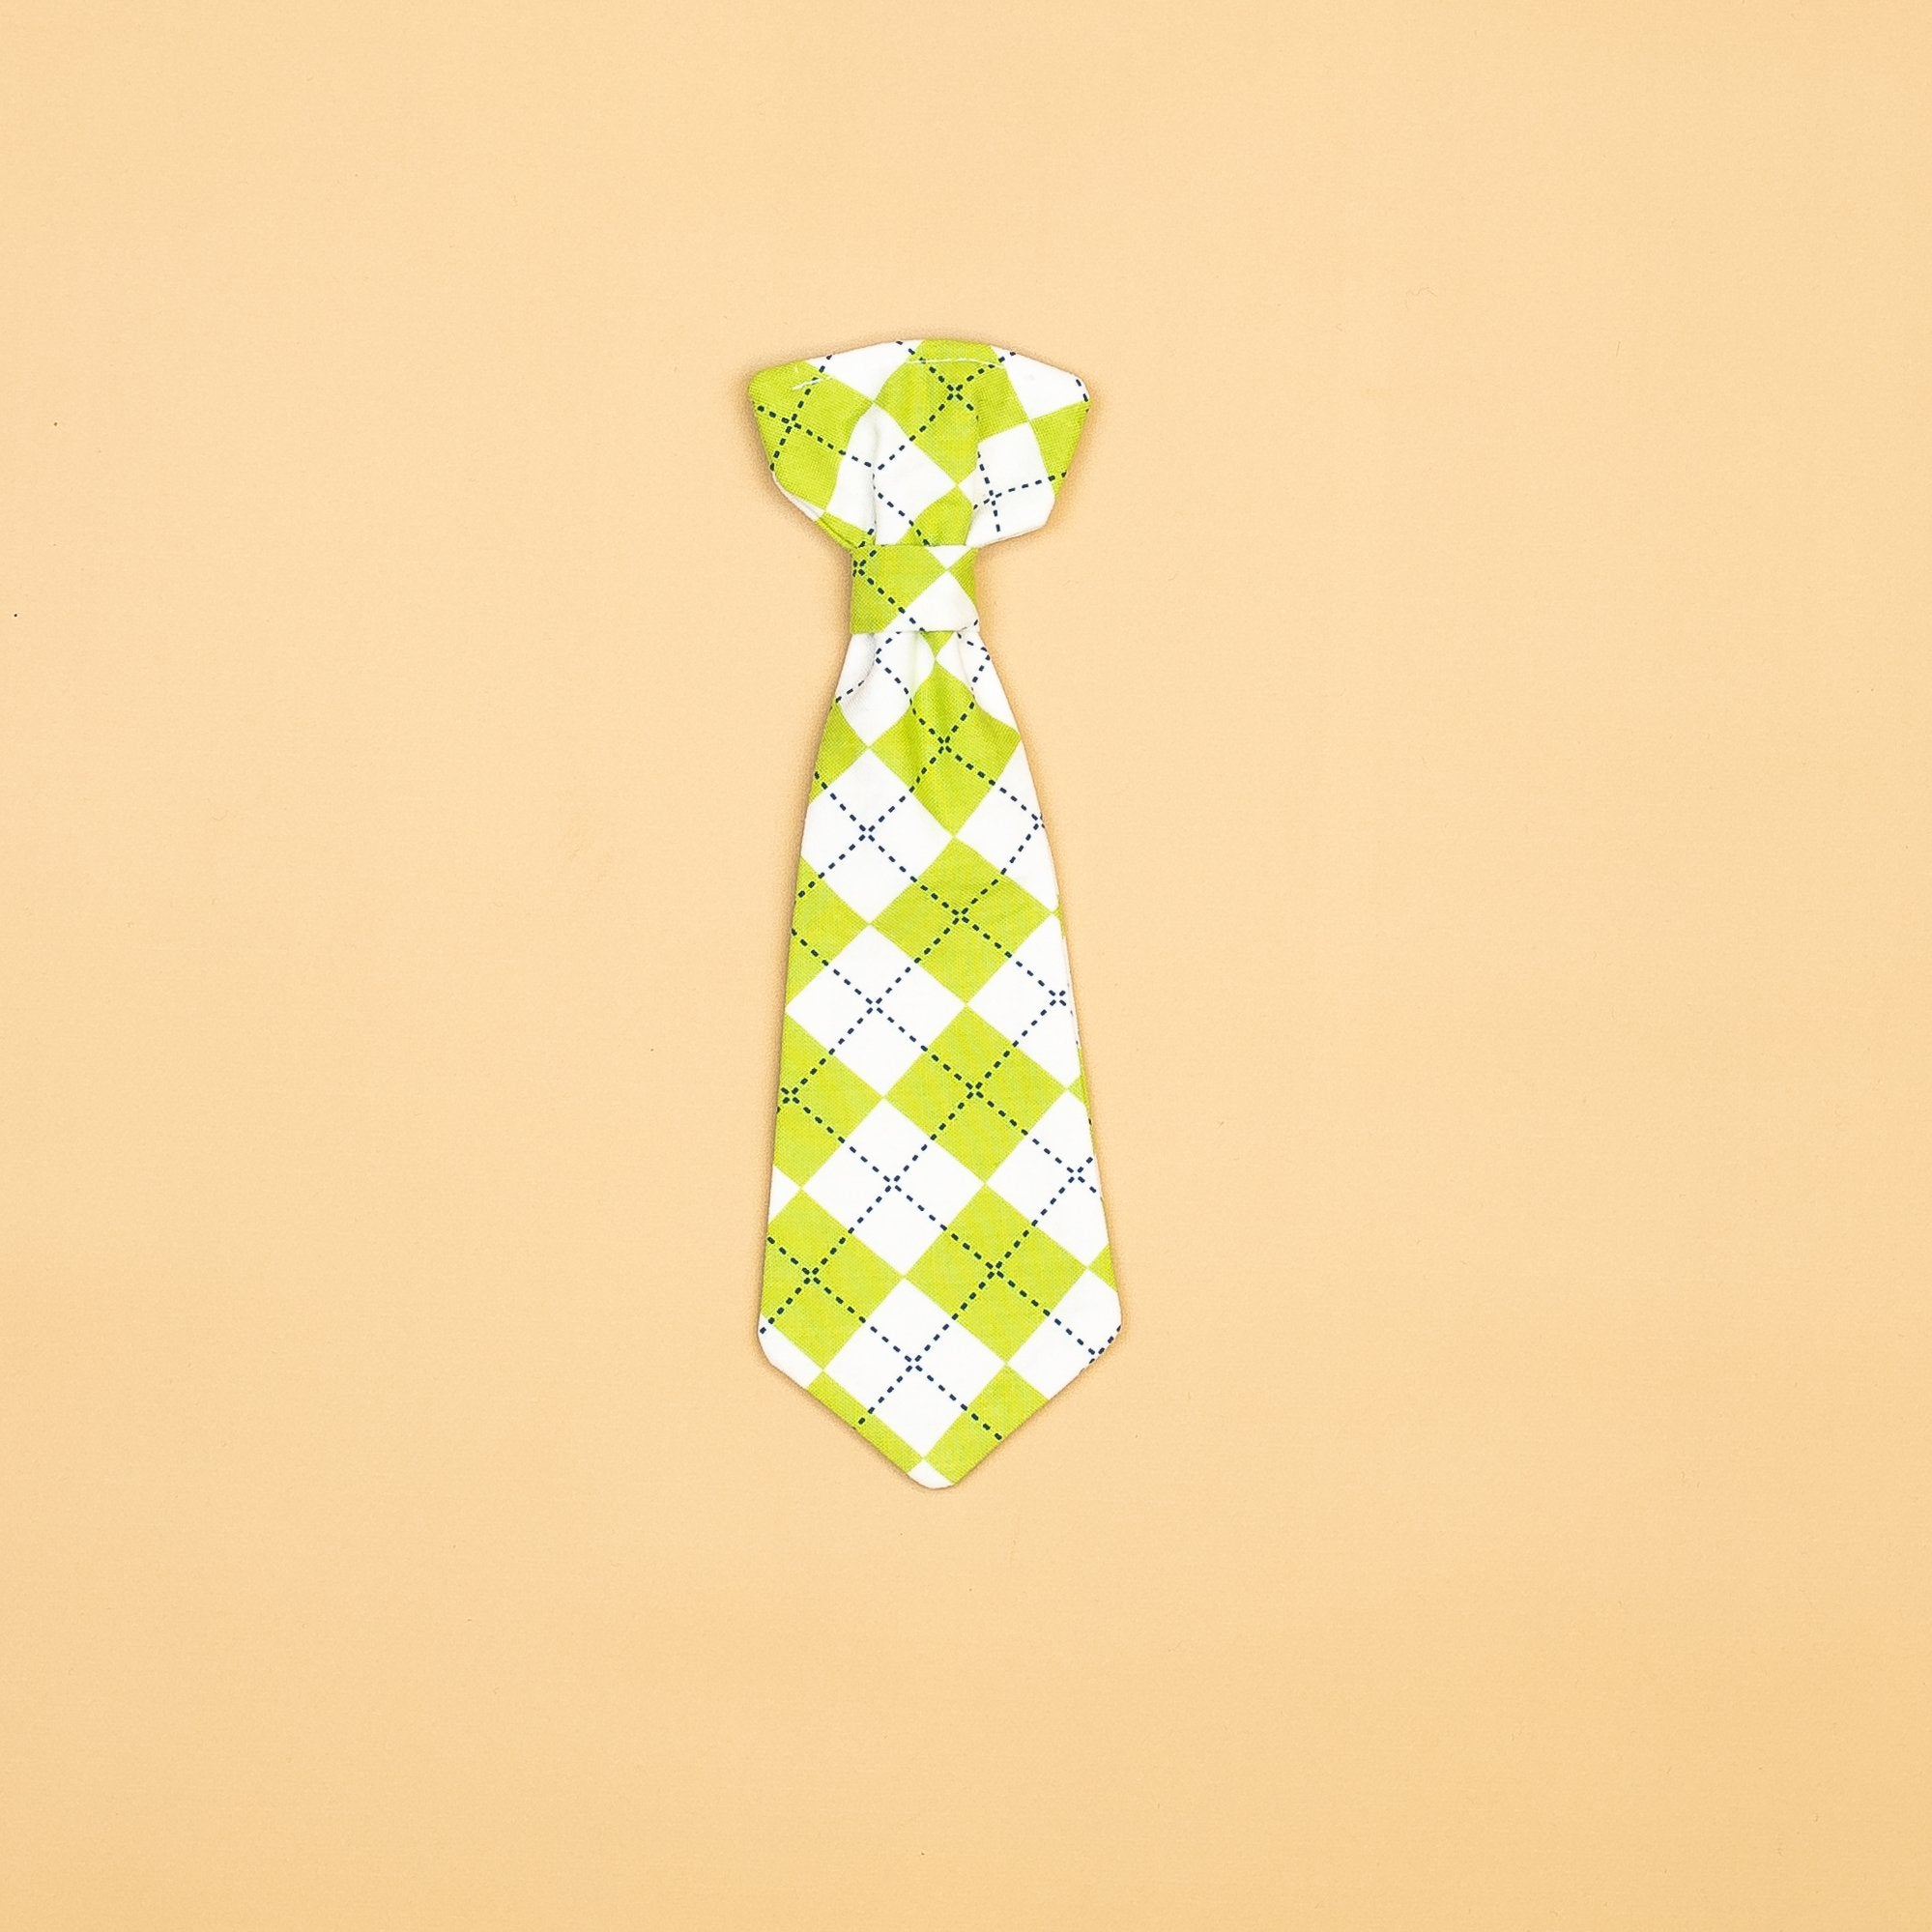 Cuddle Sleep Dream Ties Lime Green Snap-On Tie